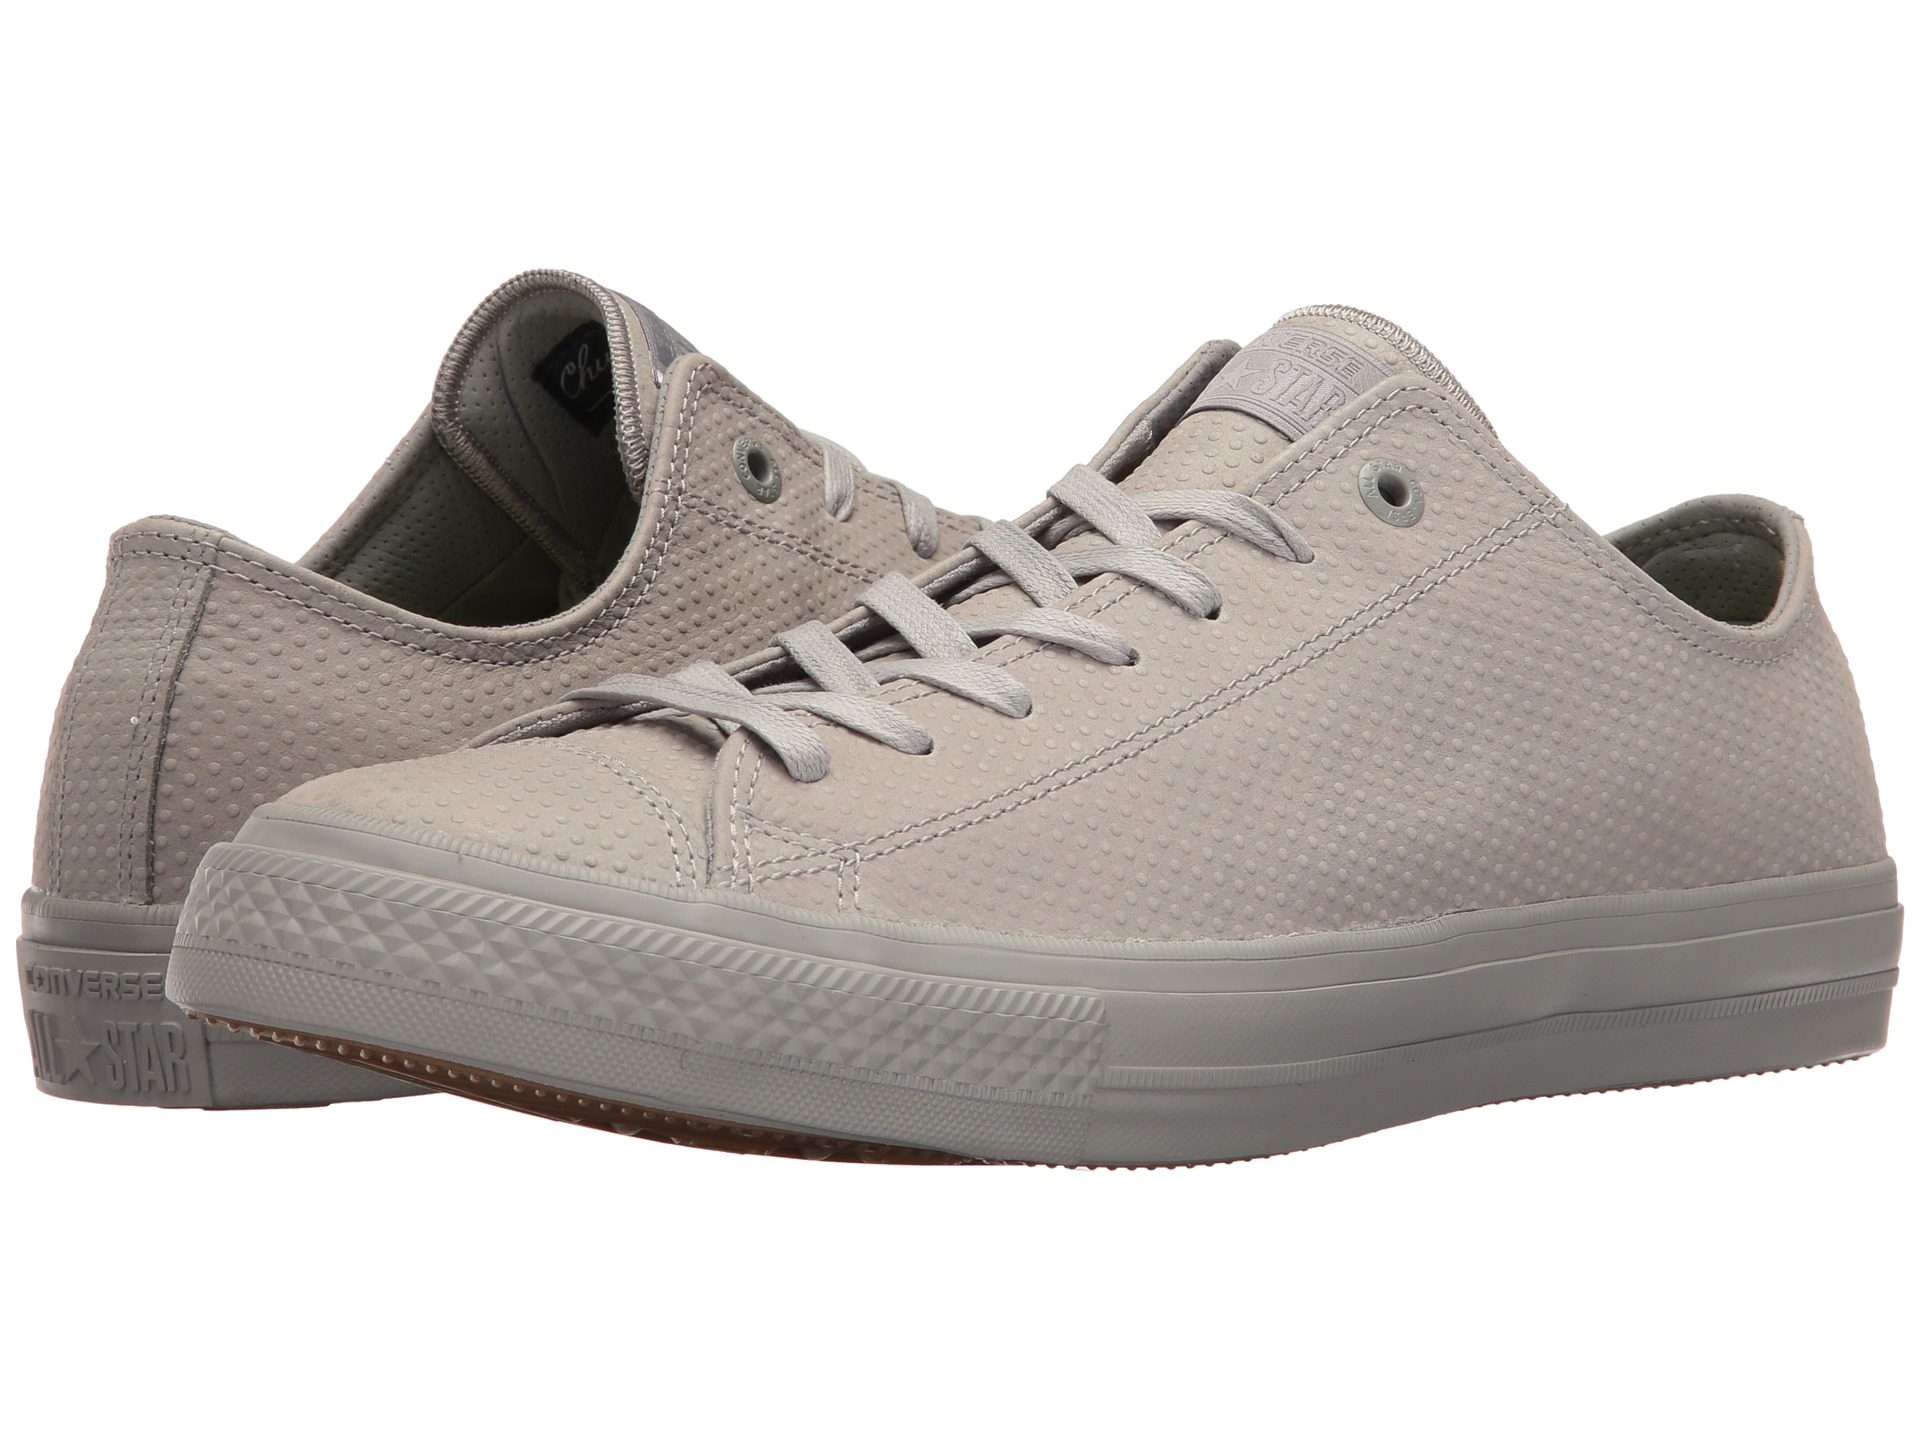 75fd31bd4dc3 85%OFF Converse Chuck Taylor  All Star  II Mono Lux Leather Ox at ...